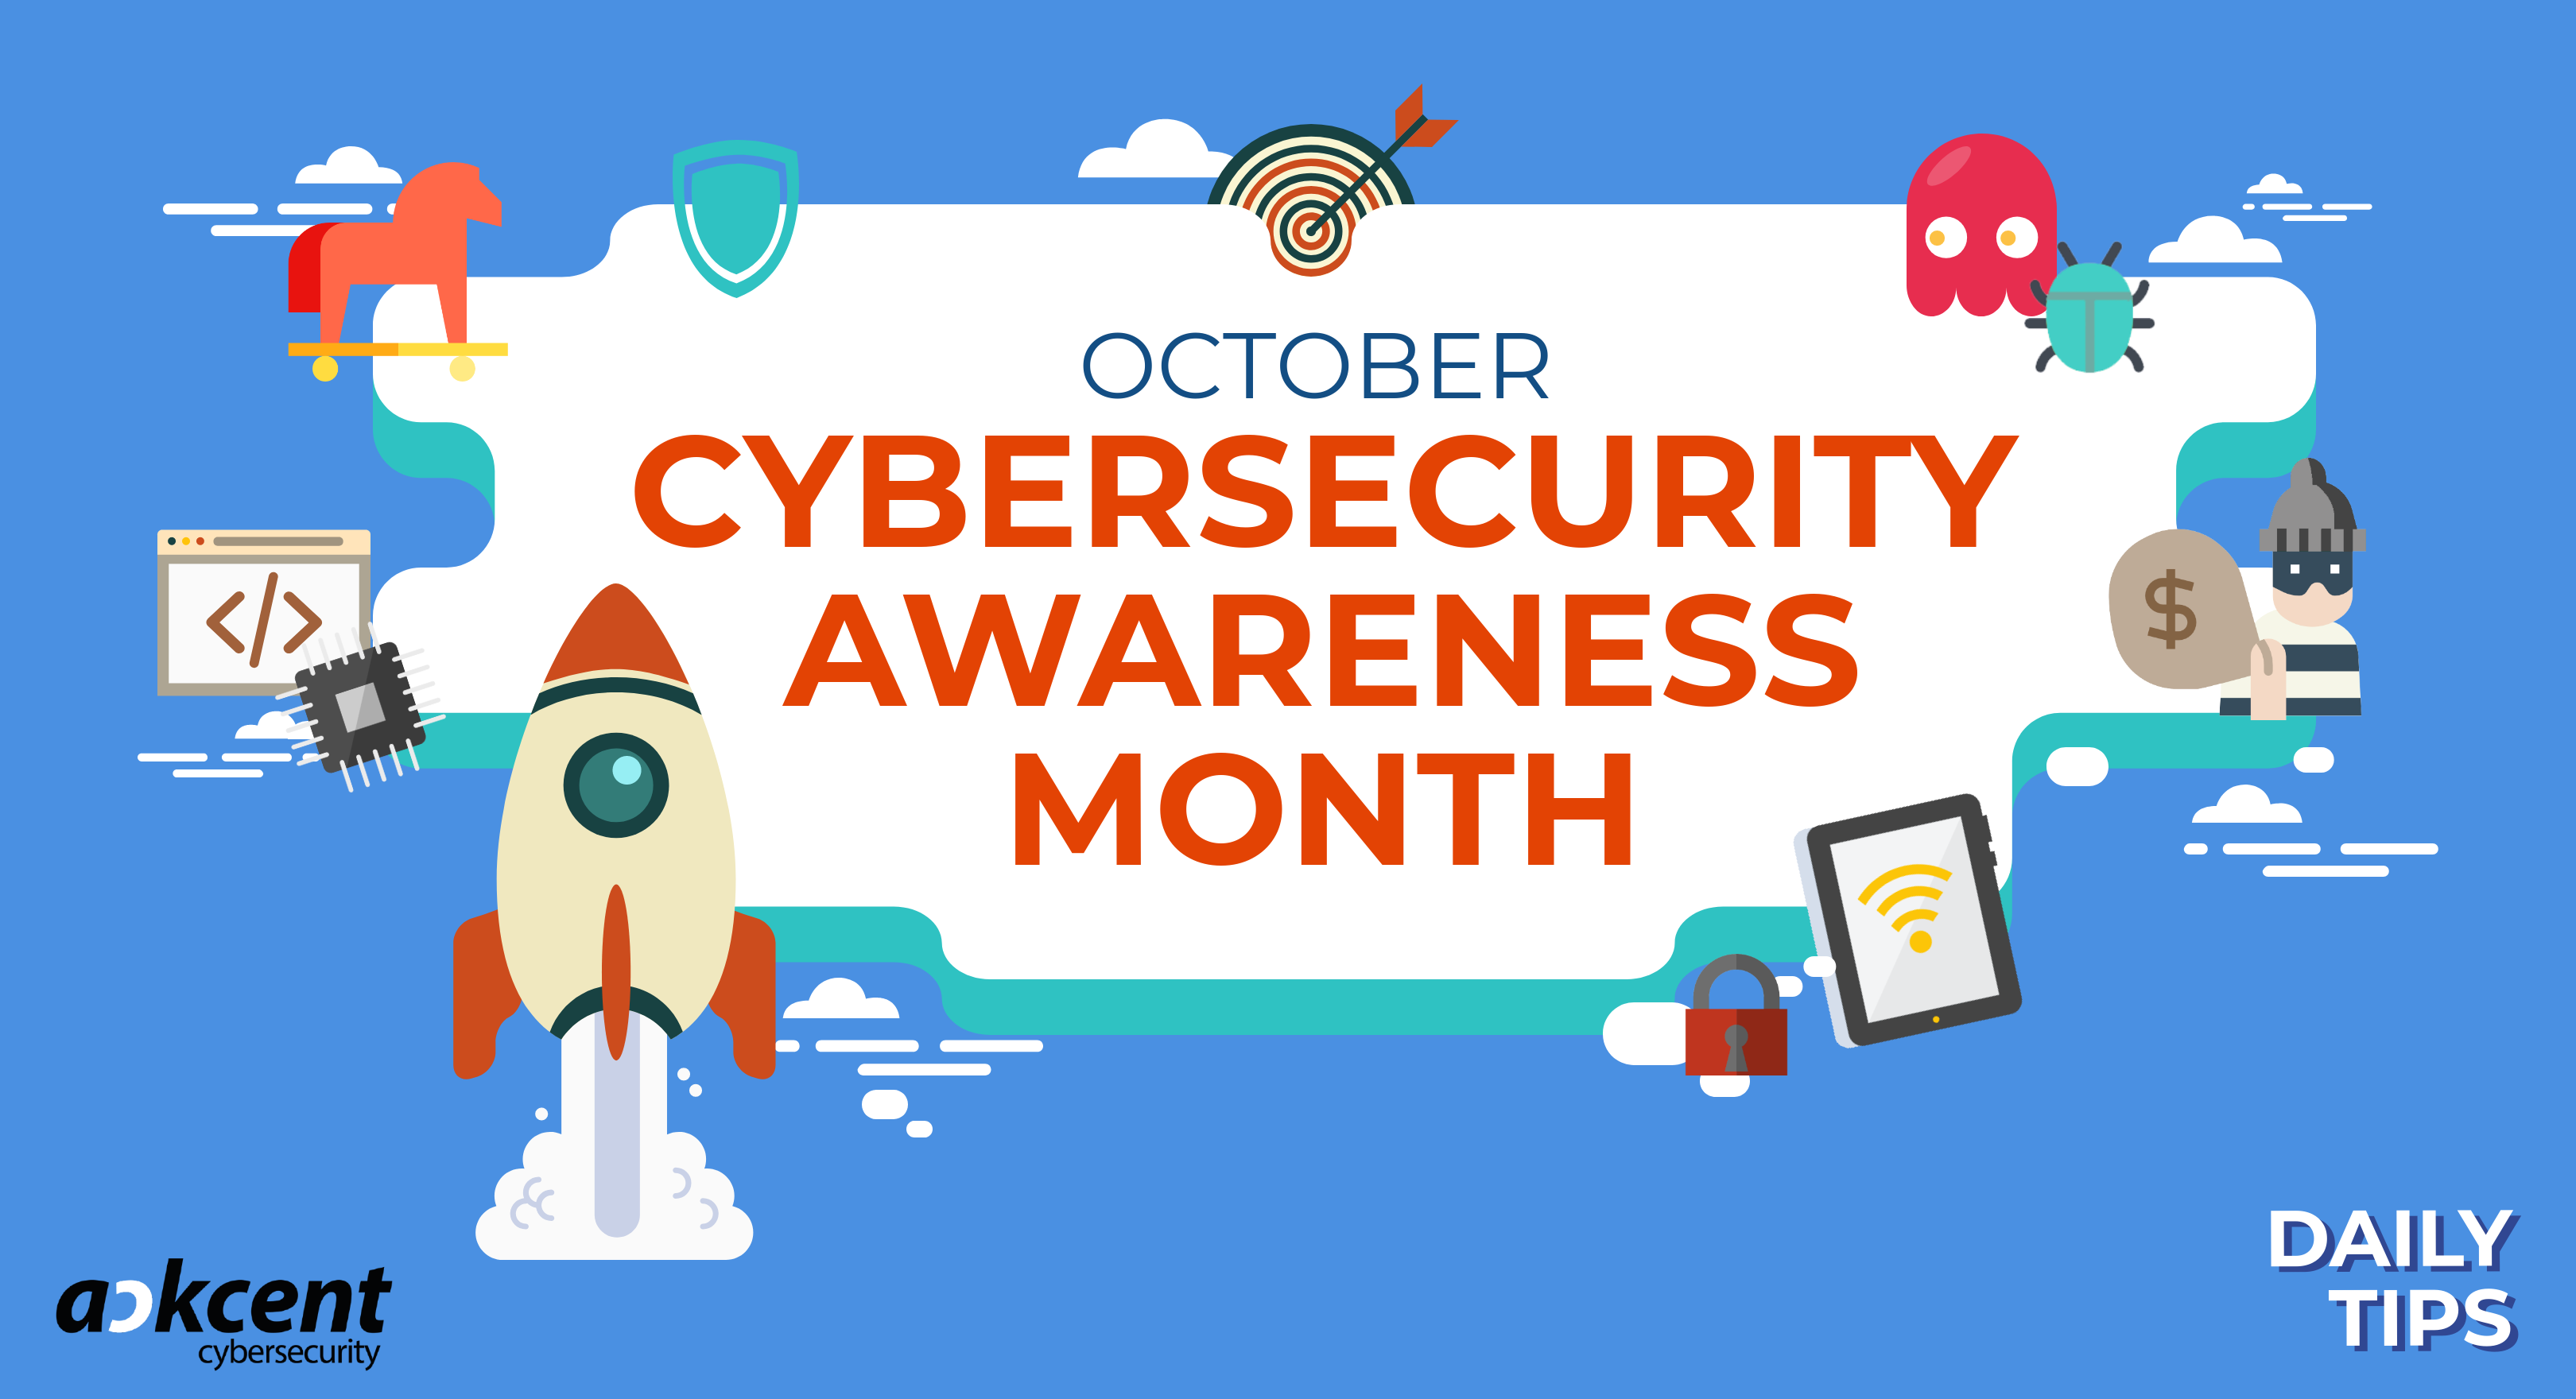 Join Ackcent's Cybersecurity Awareness Month to keep your team cybersecure